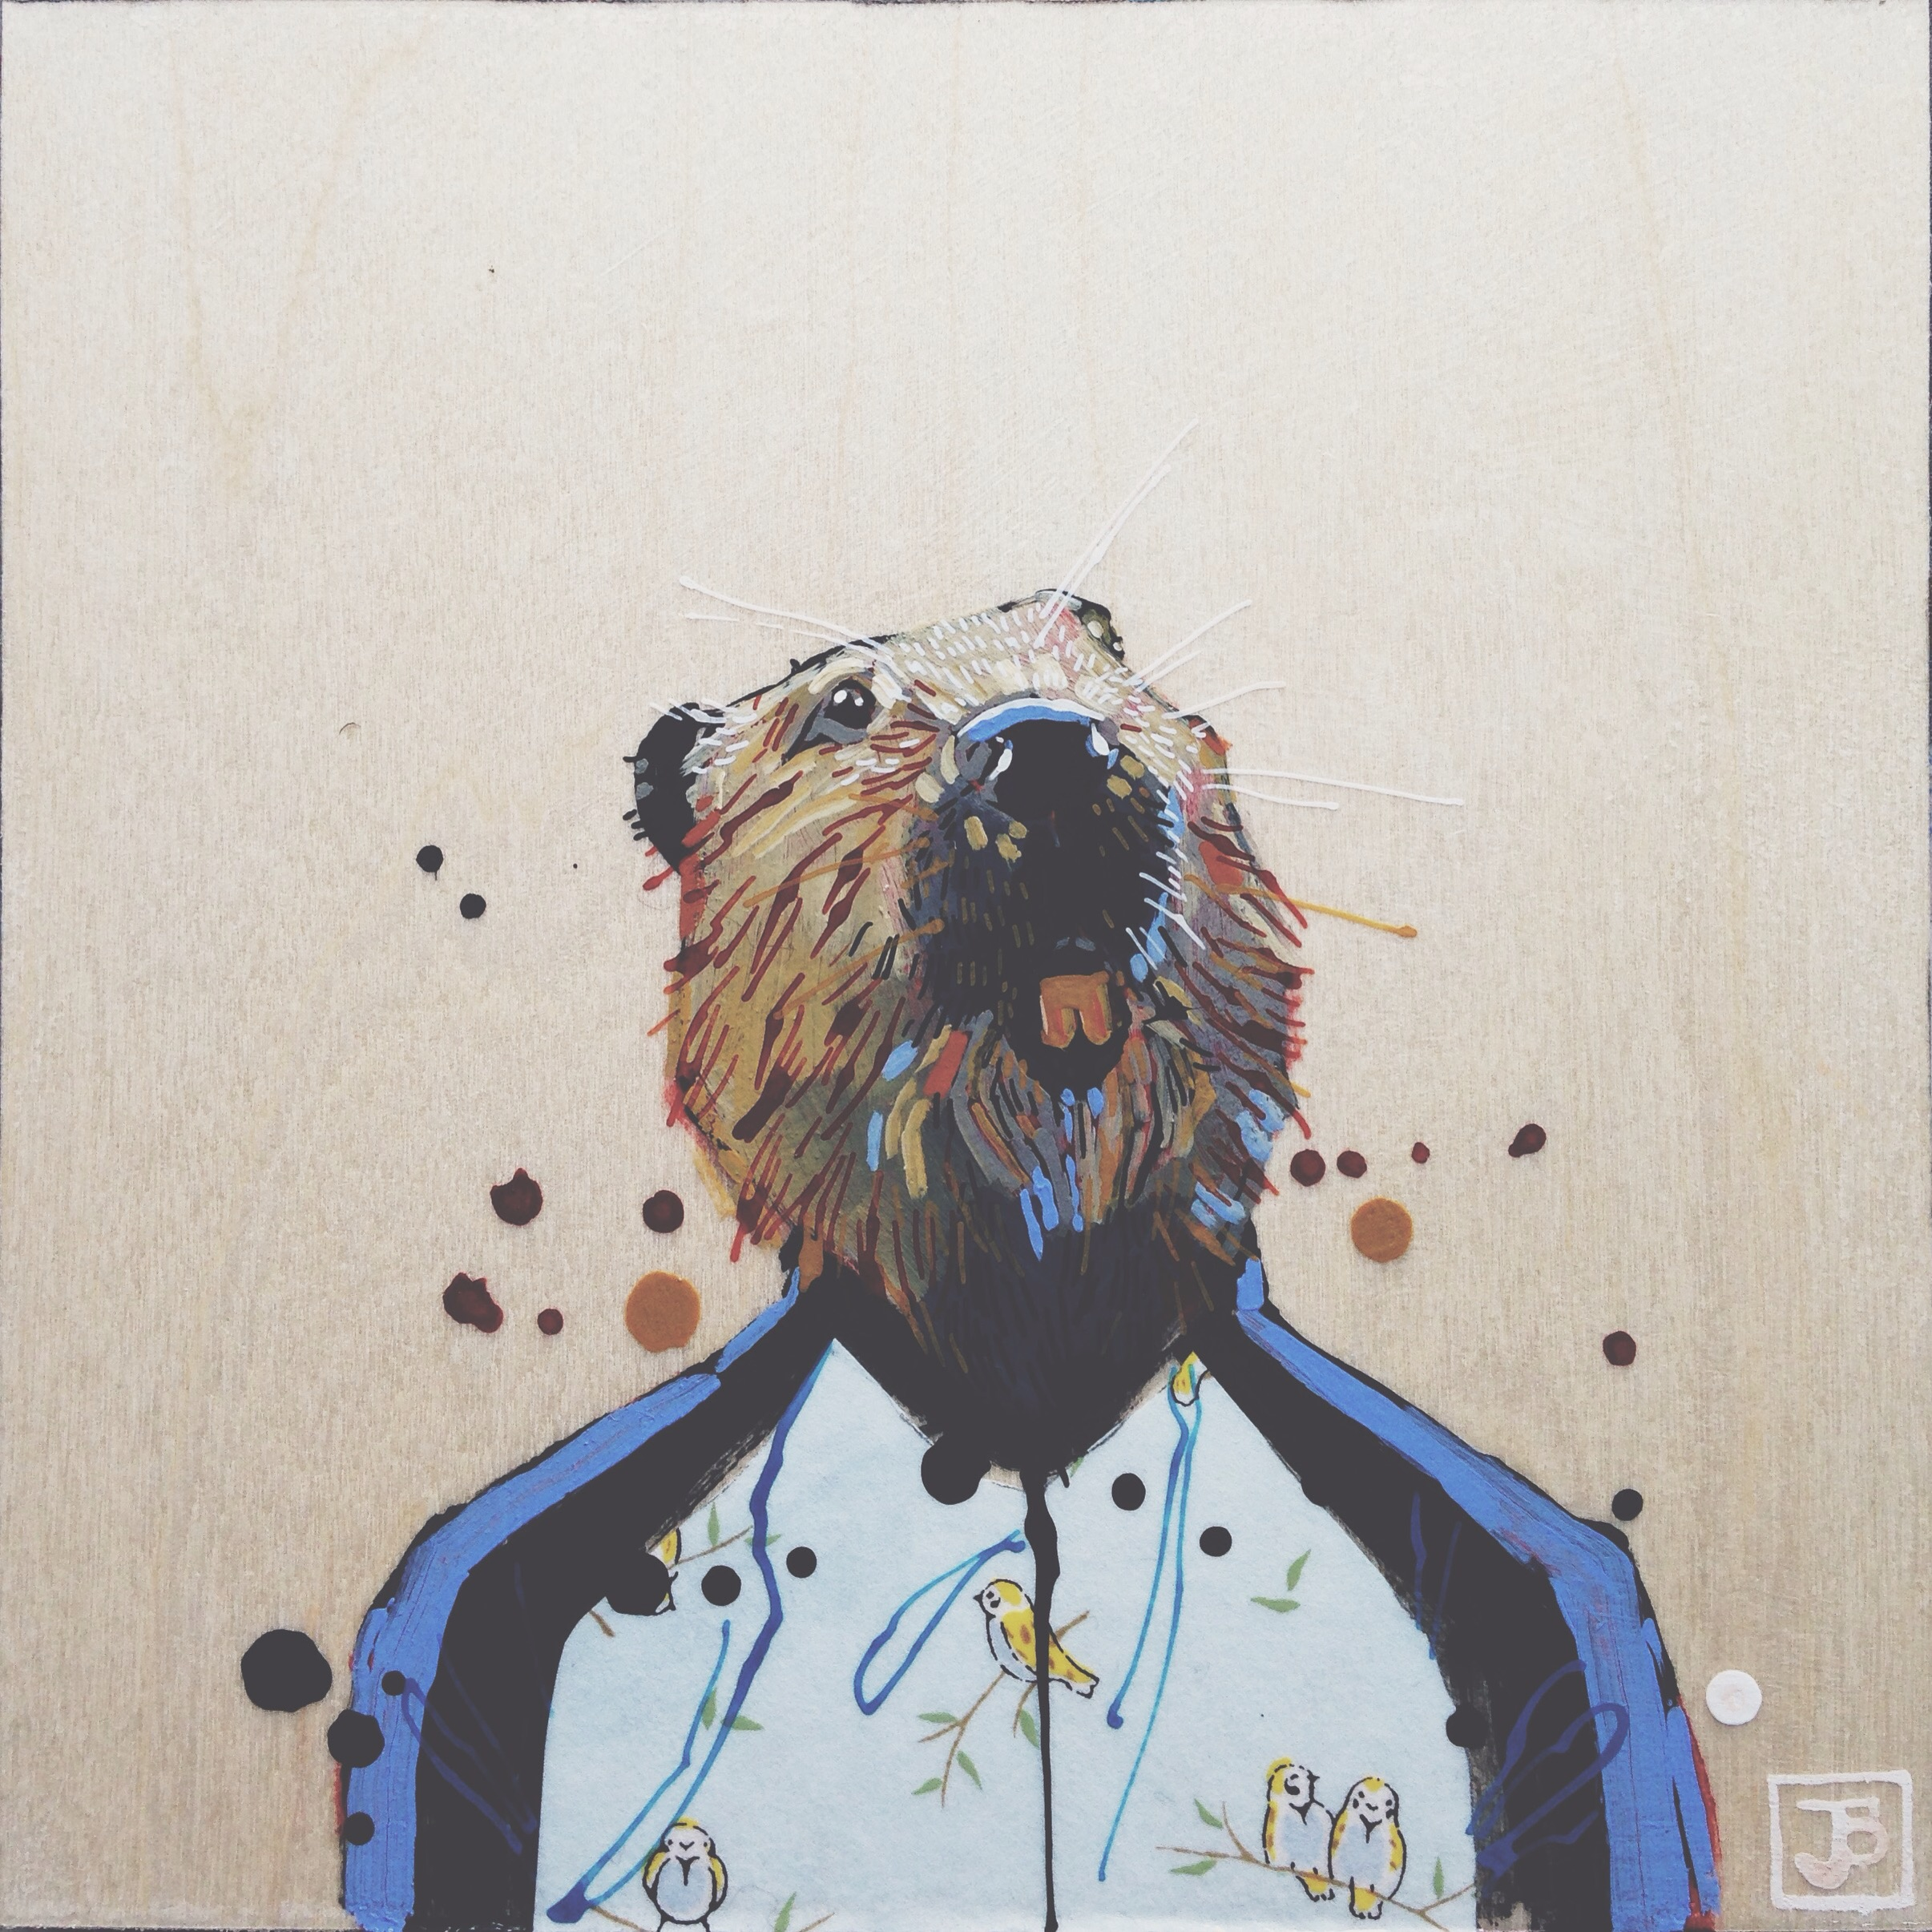 beaver, mixed media on wood panel, 8x8, 2016